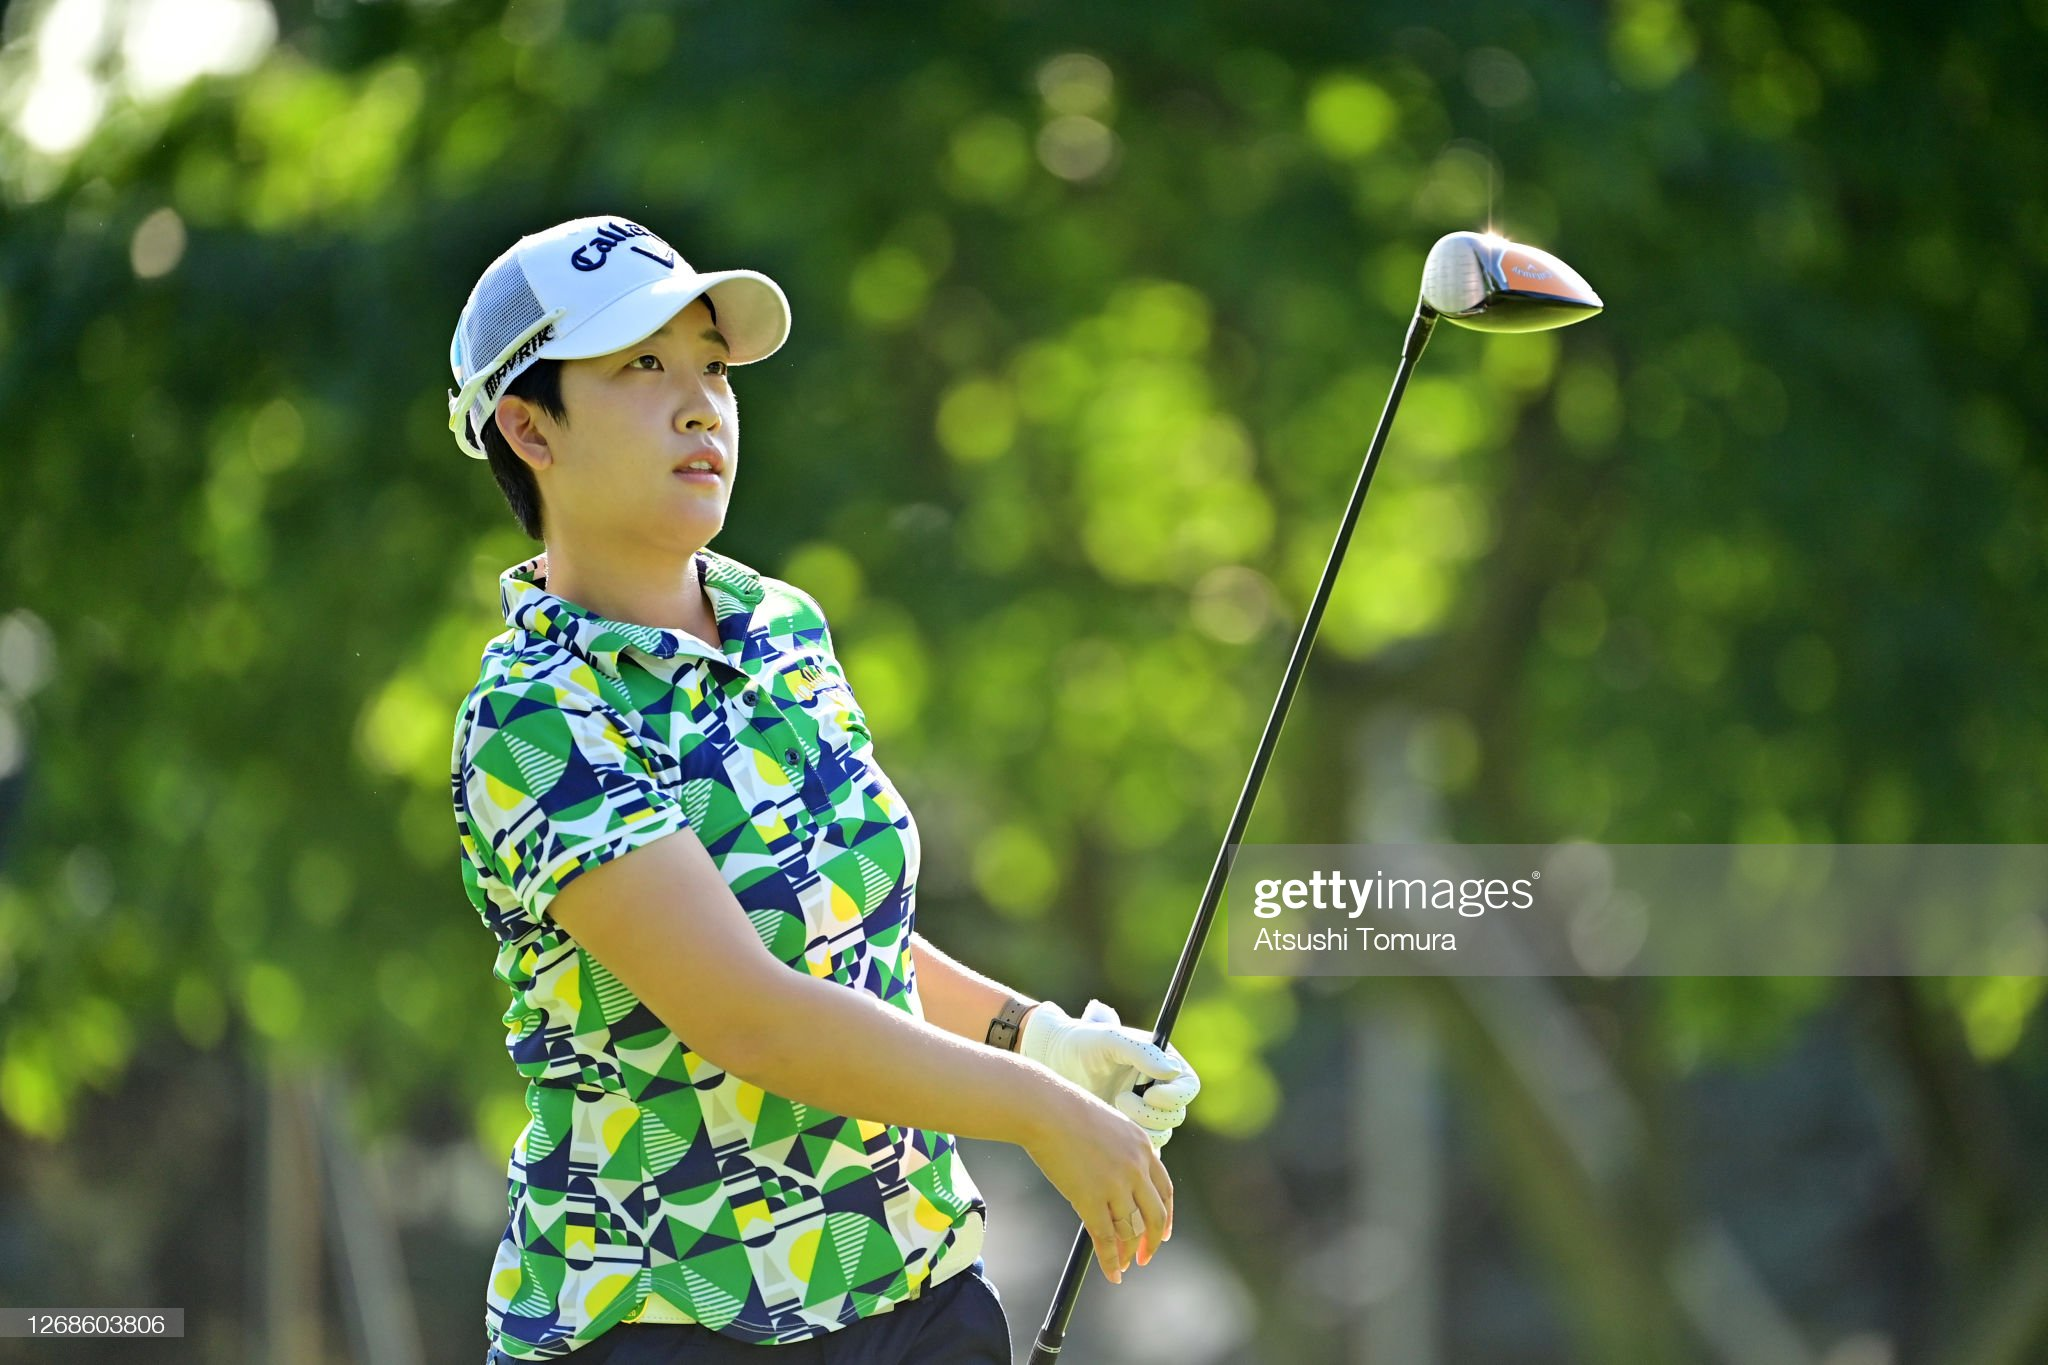 https://media.gettyimages.com/photos/heekyung-bae-of-south-korea-hits-her-tee-shot-on-the-1st-hole-during-picture-id1268603806?s=2048x2048